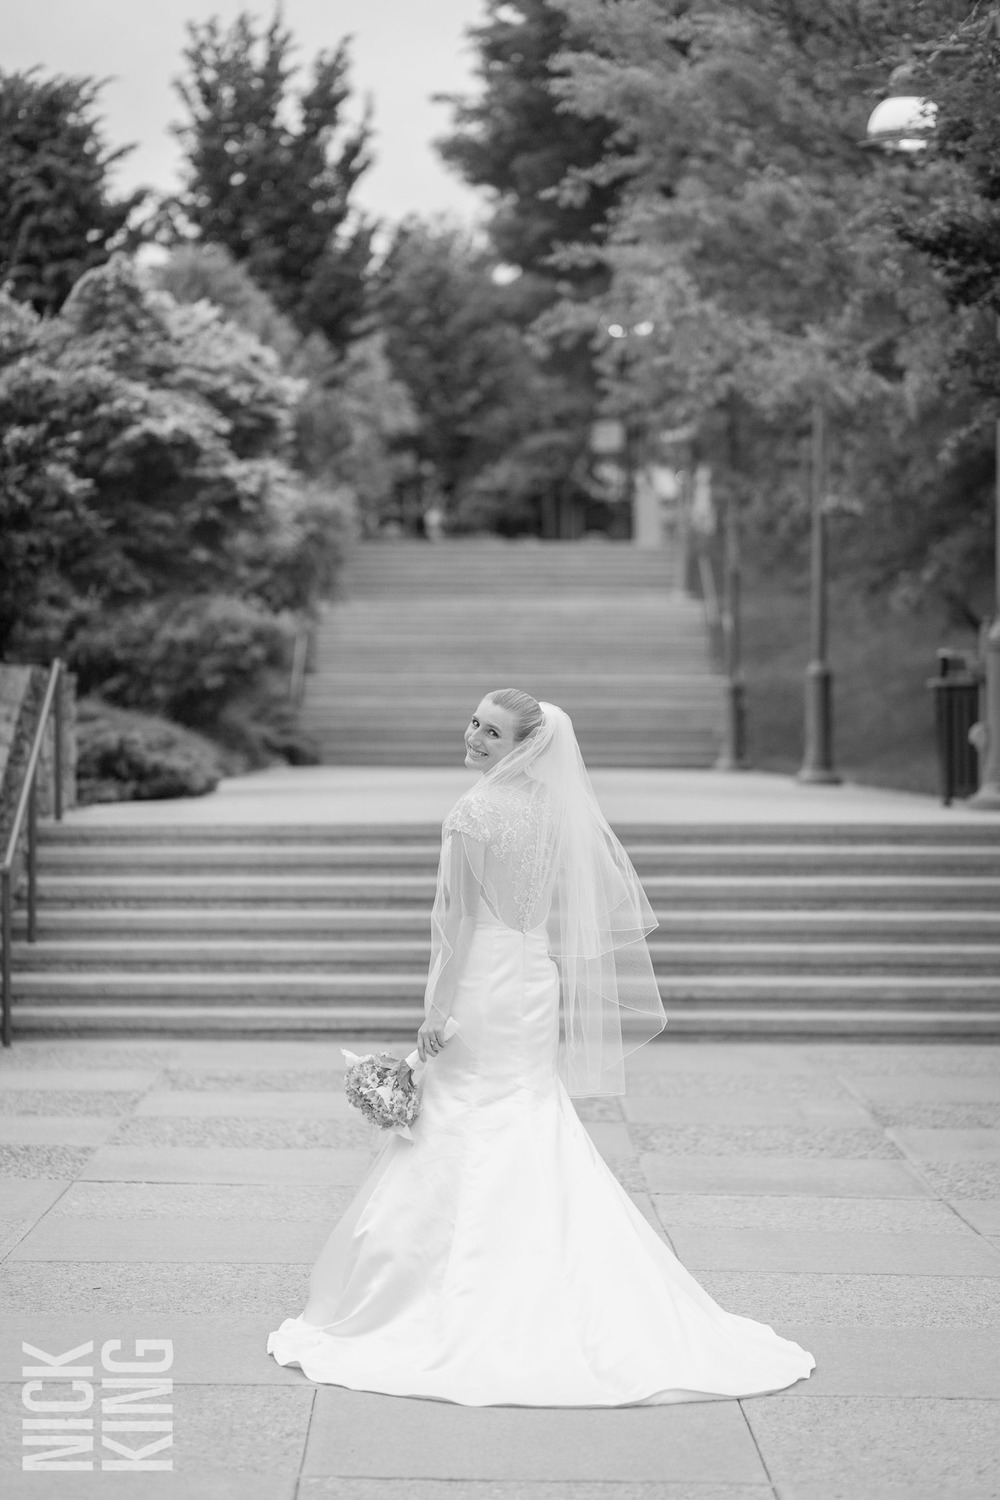 NC Arboretum Wedding Photography-6-2.jpg